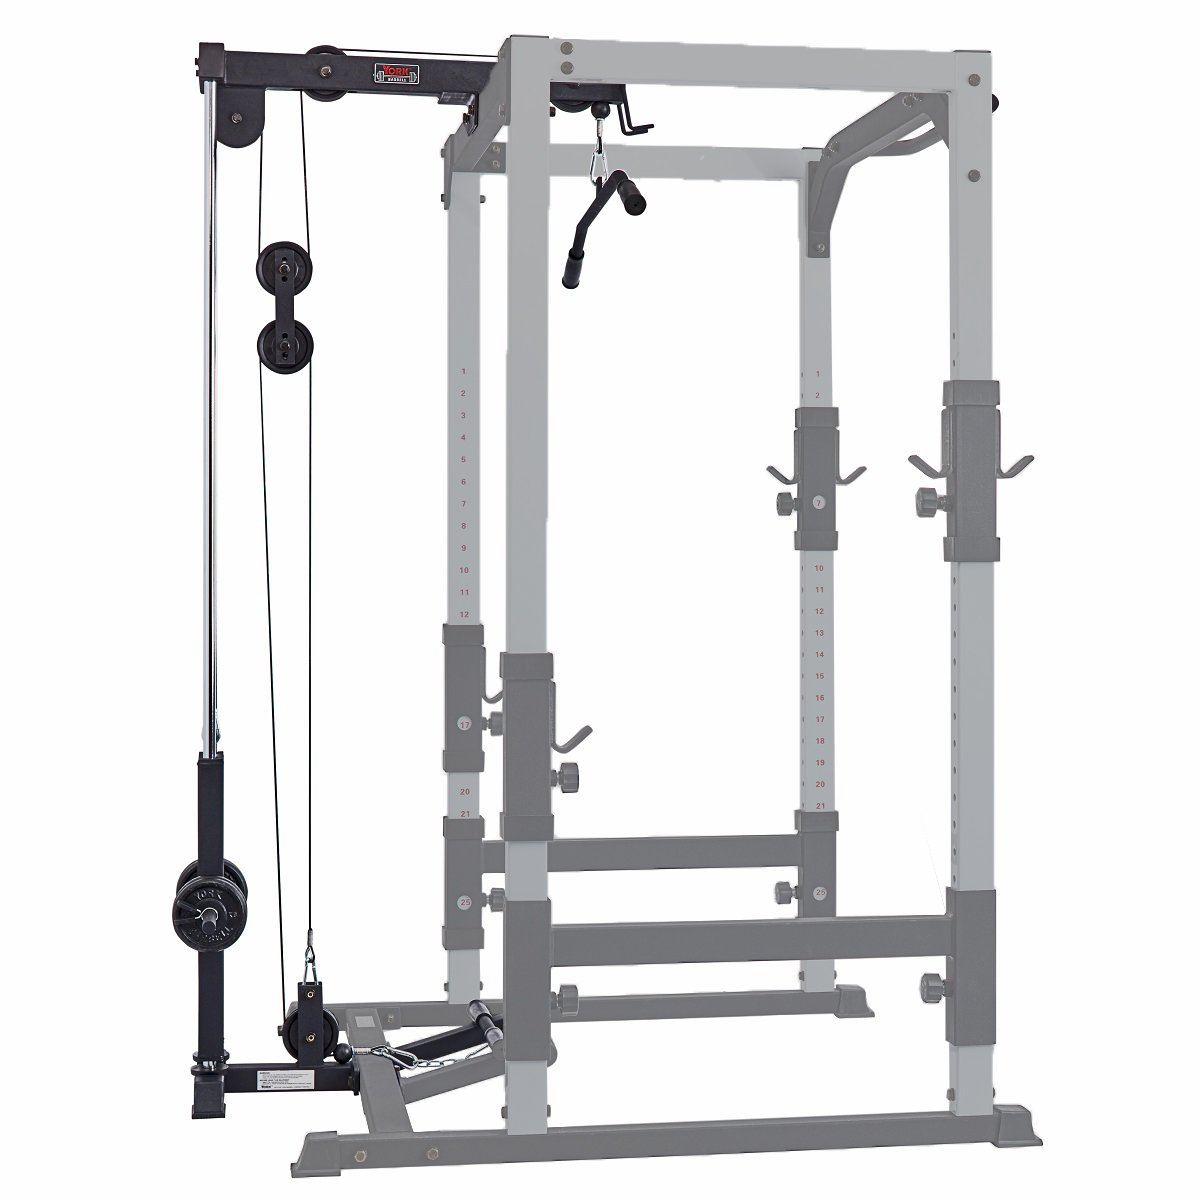 fts hi low pulley option for power cage with weight carriage